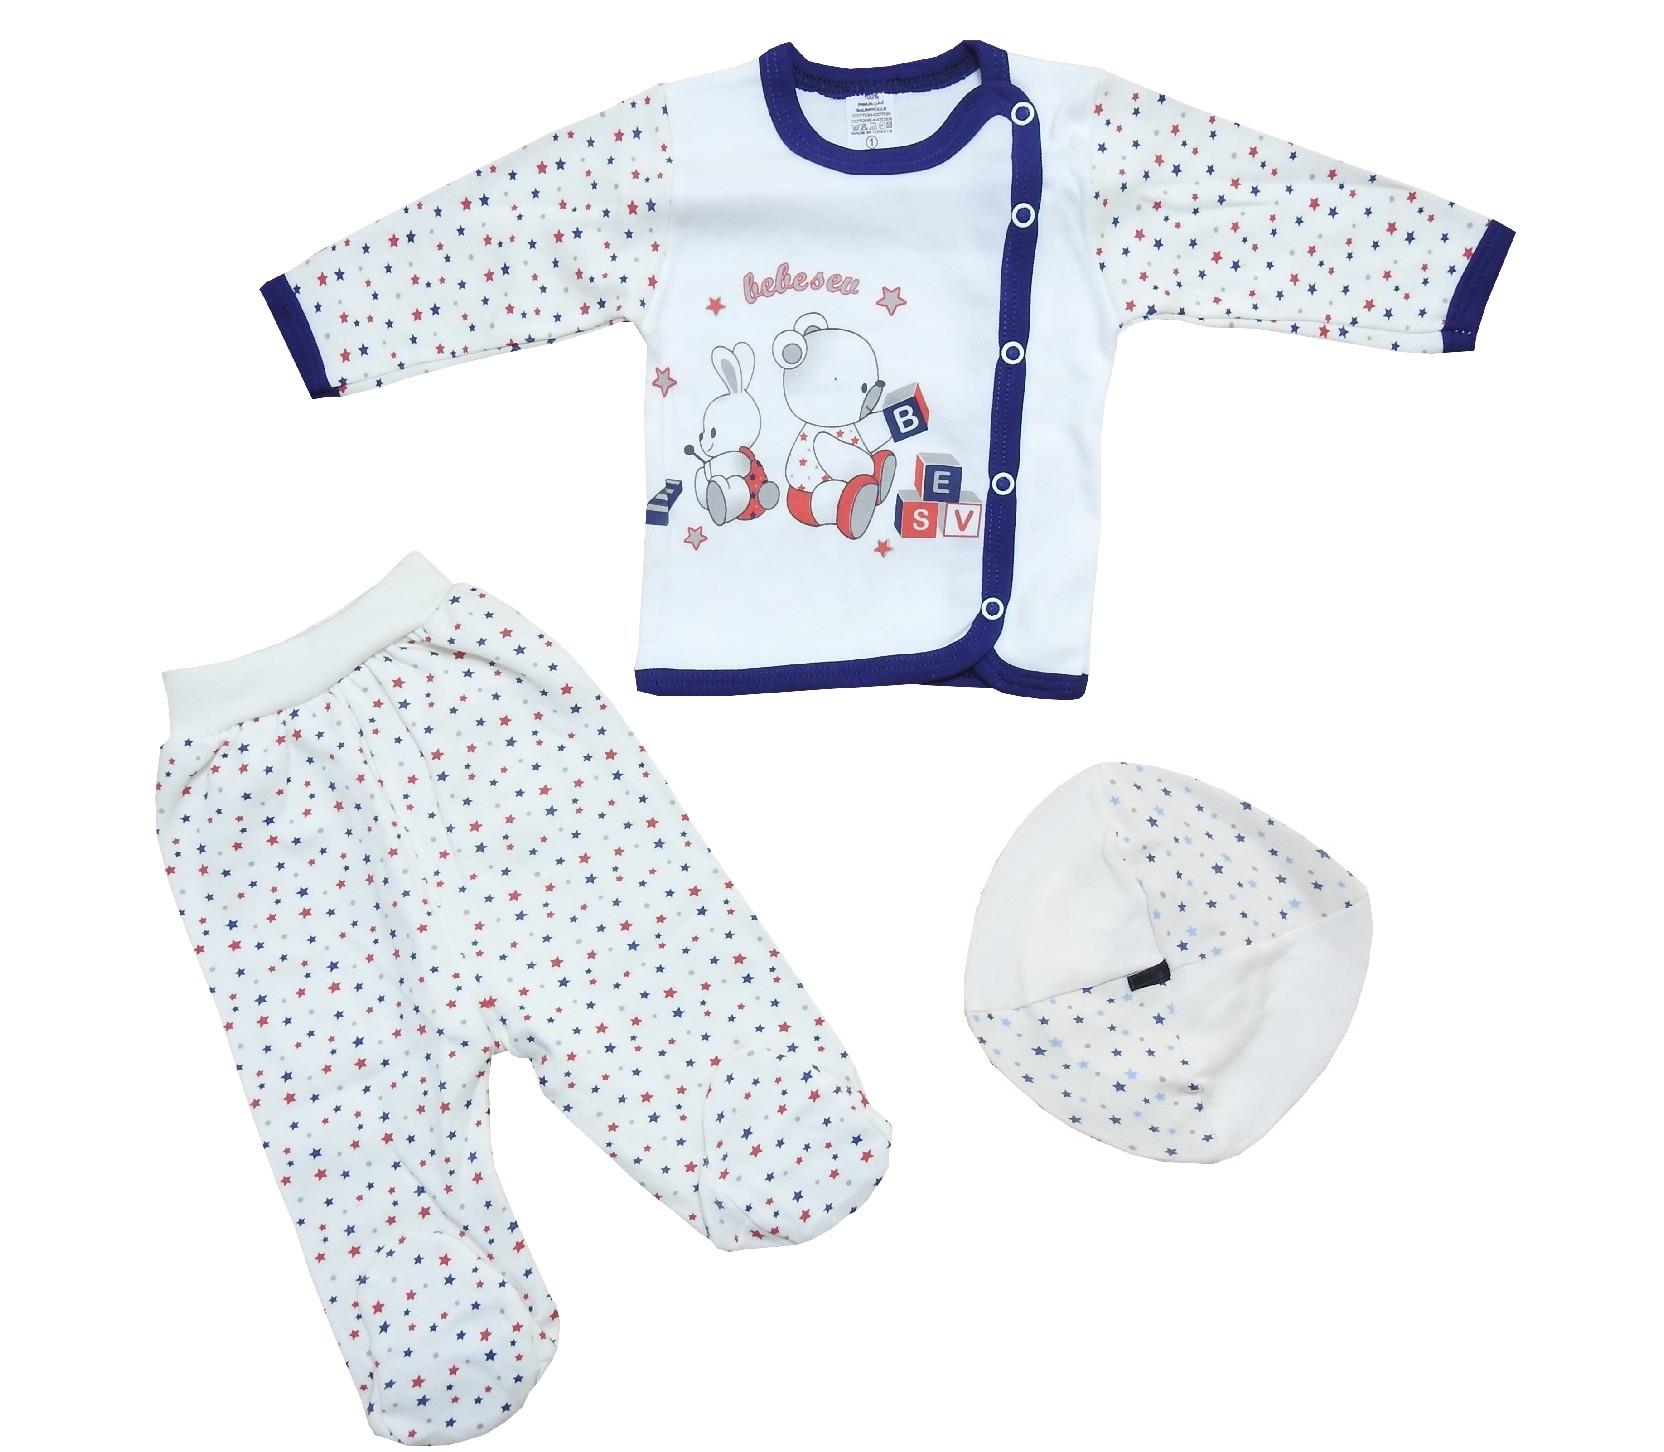 Wholesale embroidery blouse, trouser, beanie triple set for child (0-3 month)